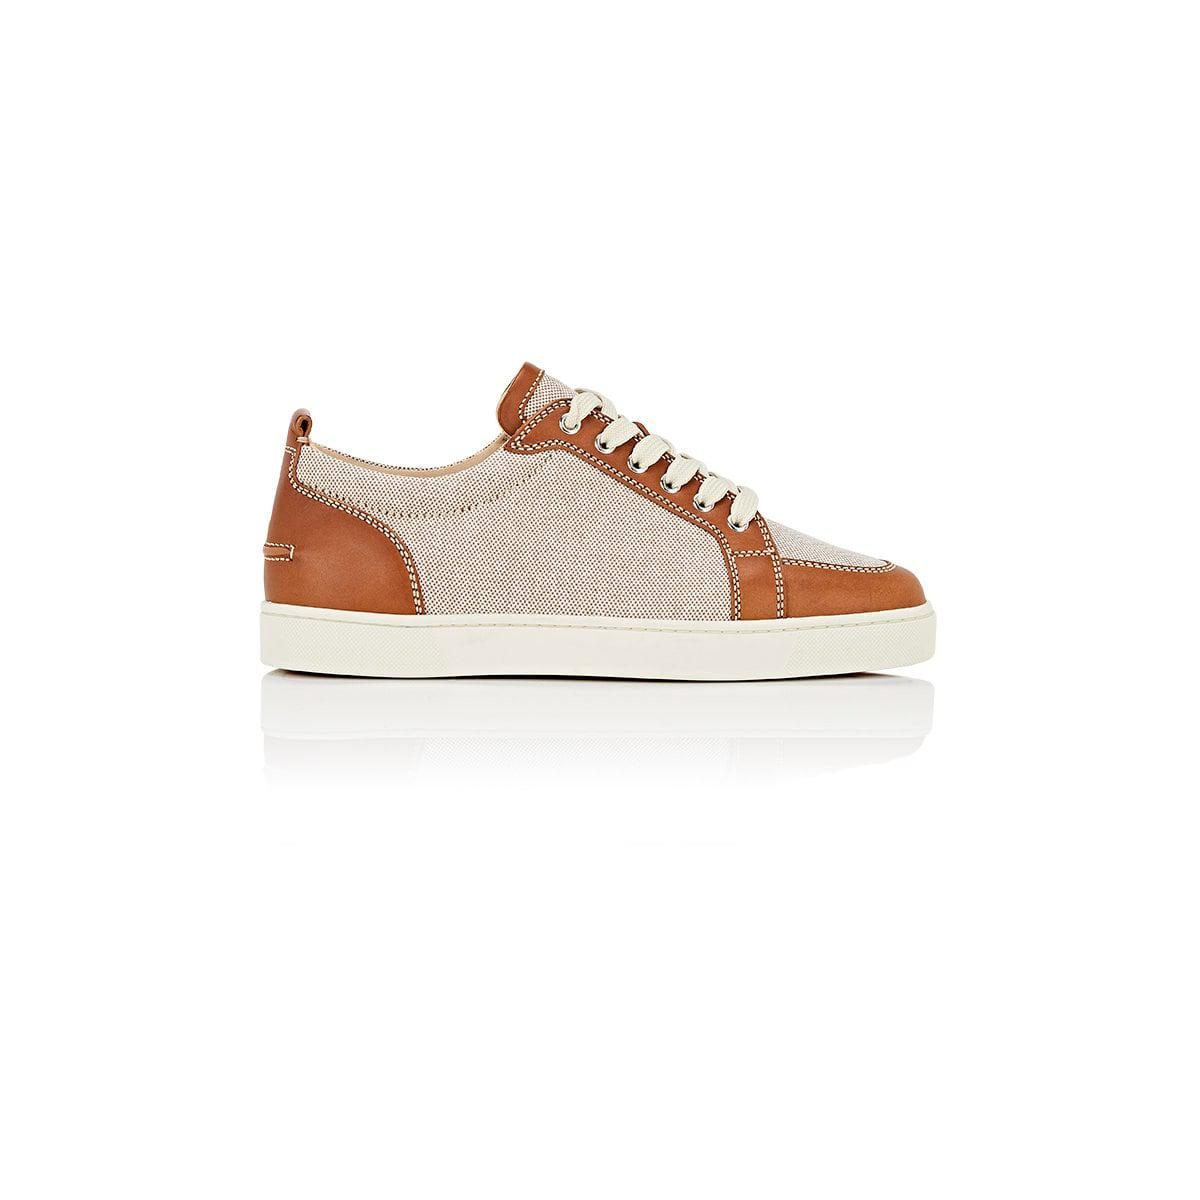 Mens Rantulow Flat Canvas & Leather Sneakers Christian Louboutin 7xyGTv